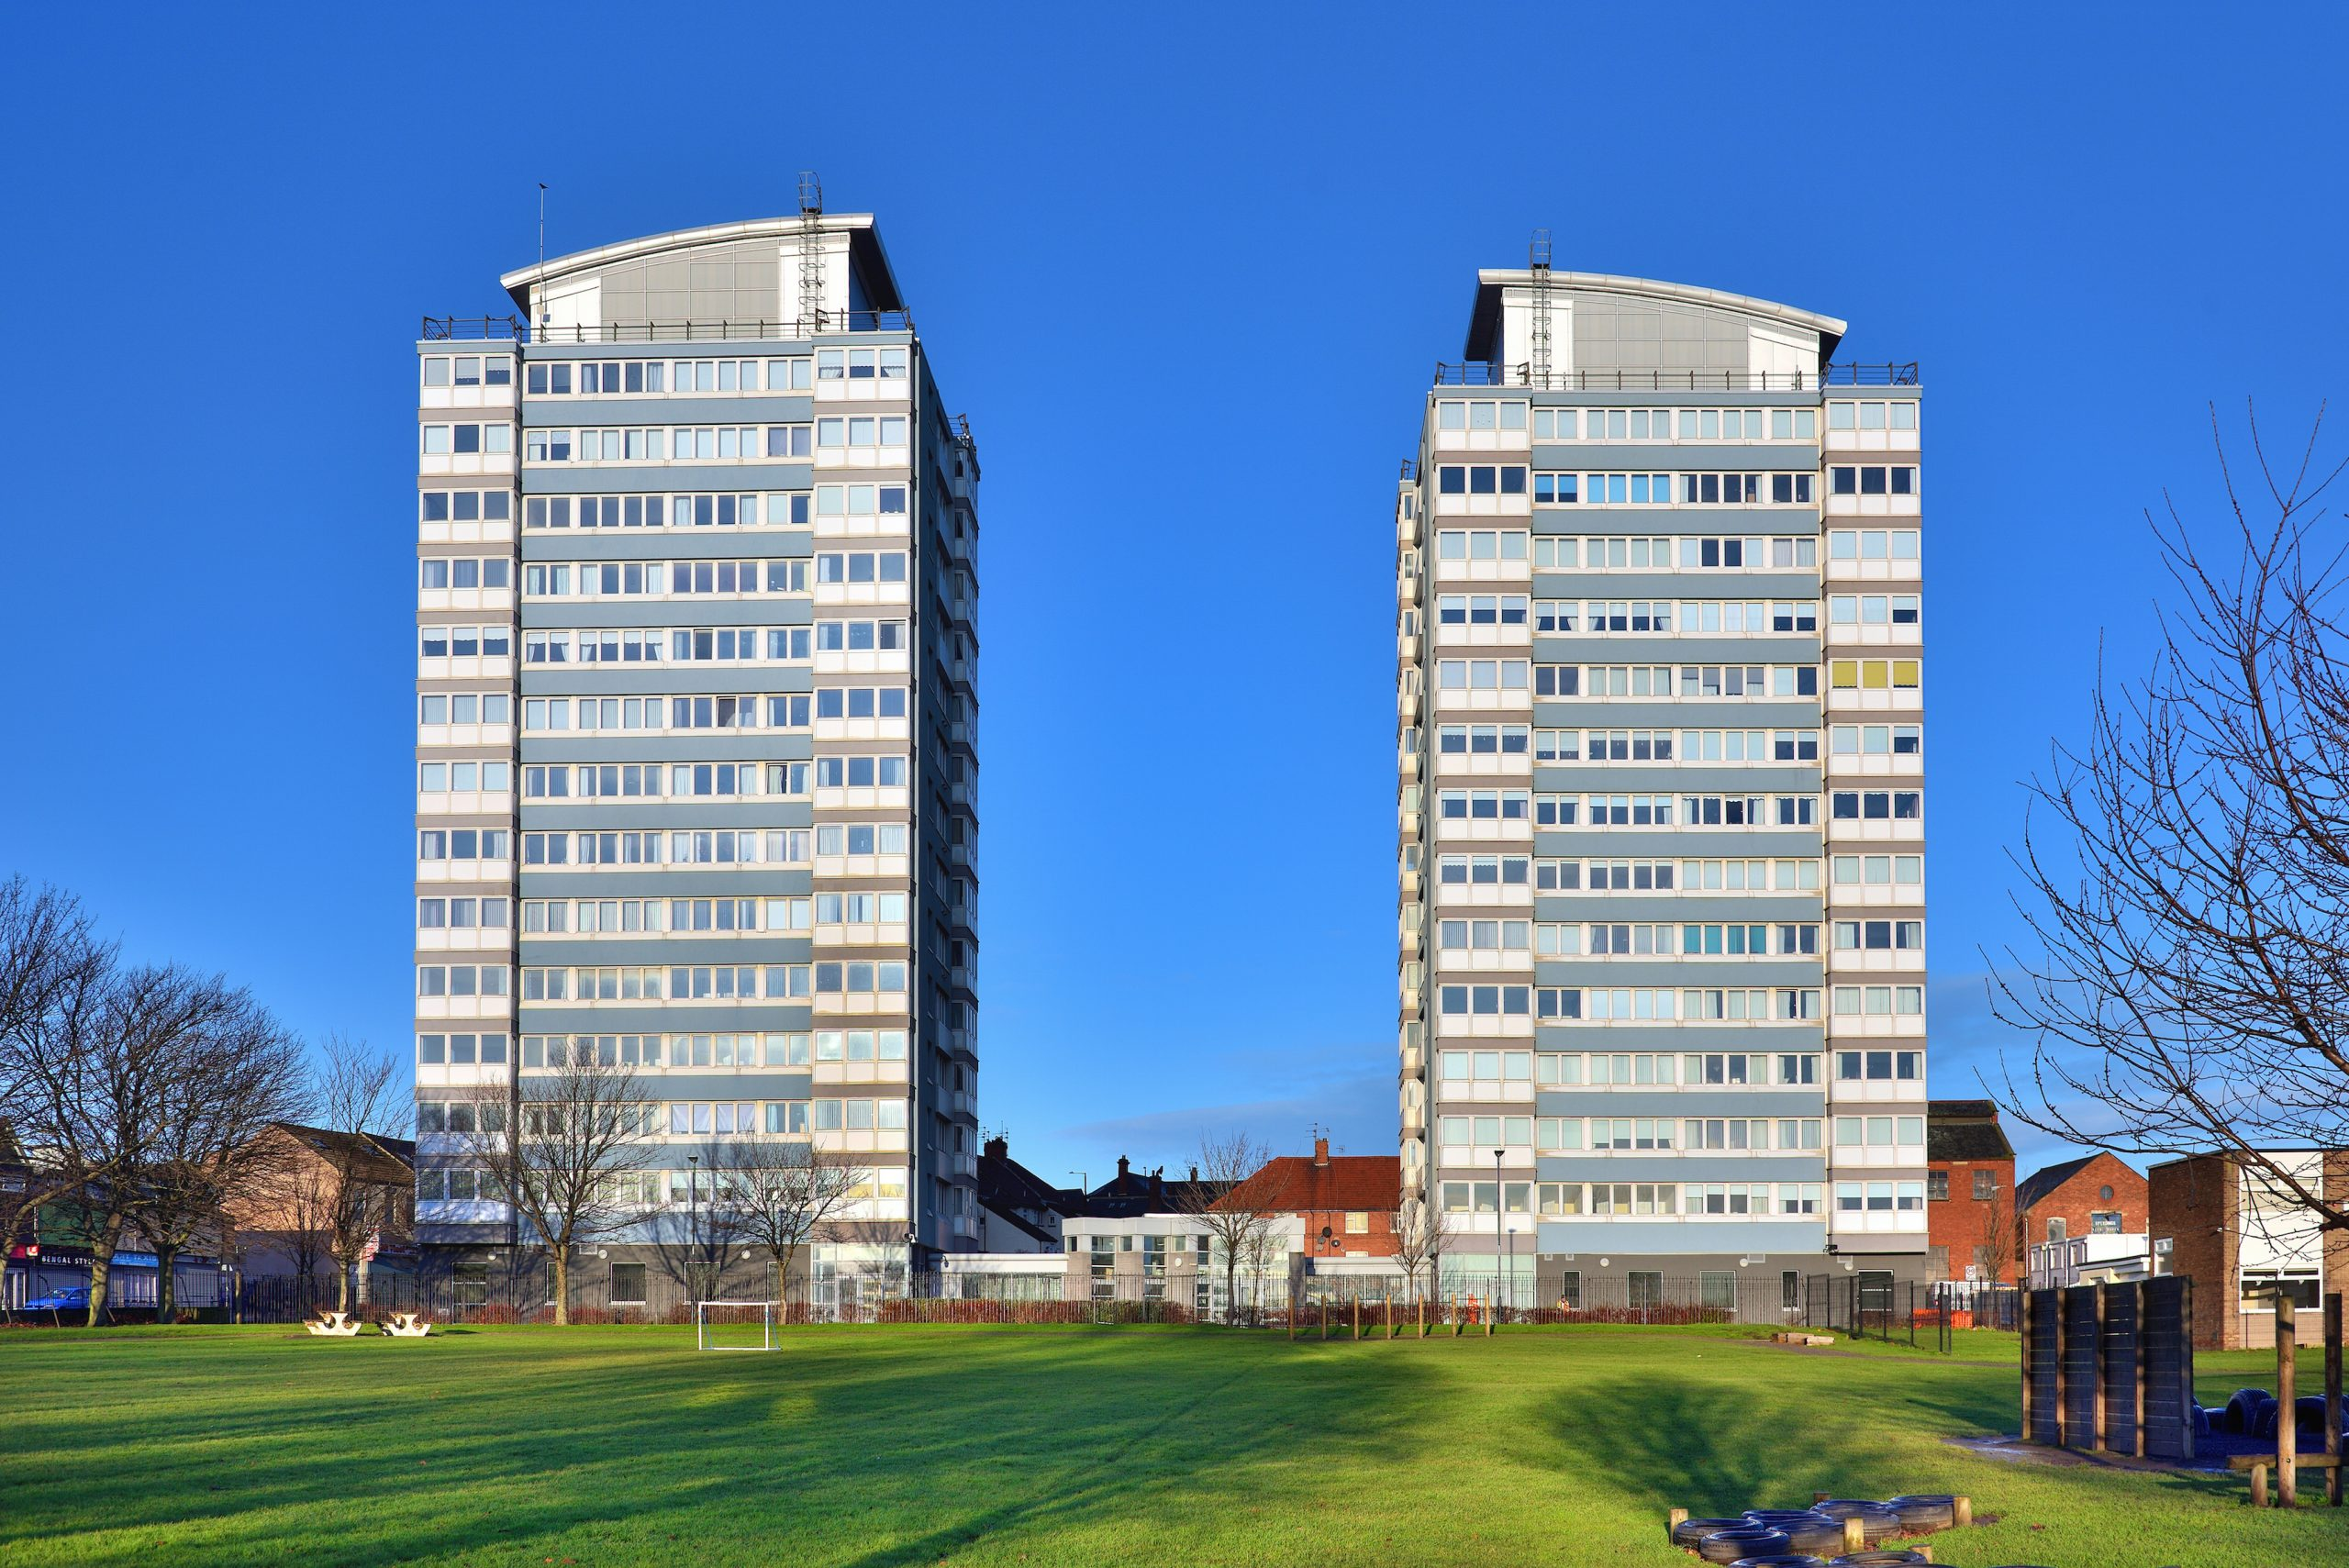 Tower blocks part of the Core 364 gas boiler replacement project in Sunderland